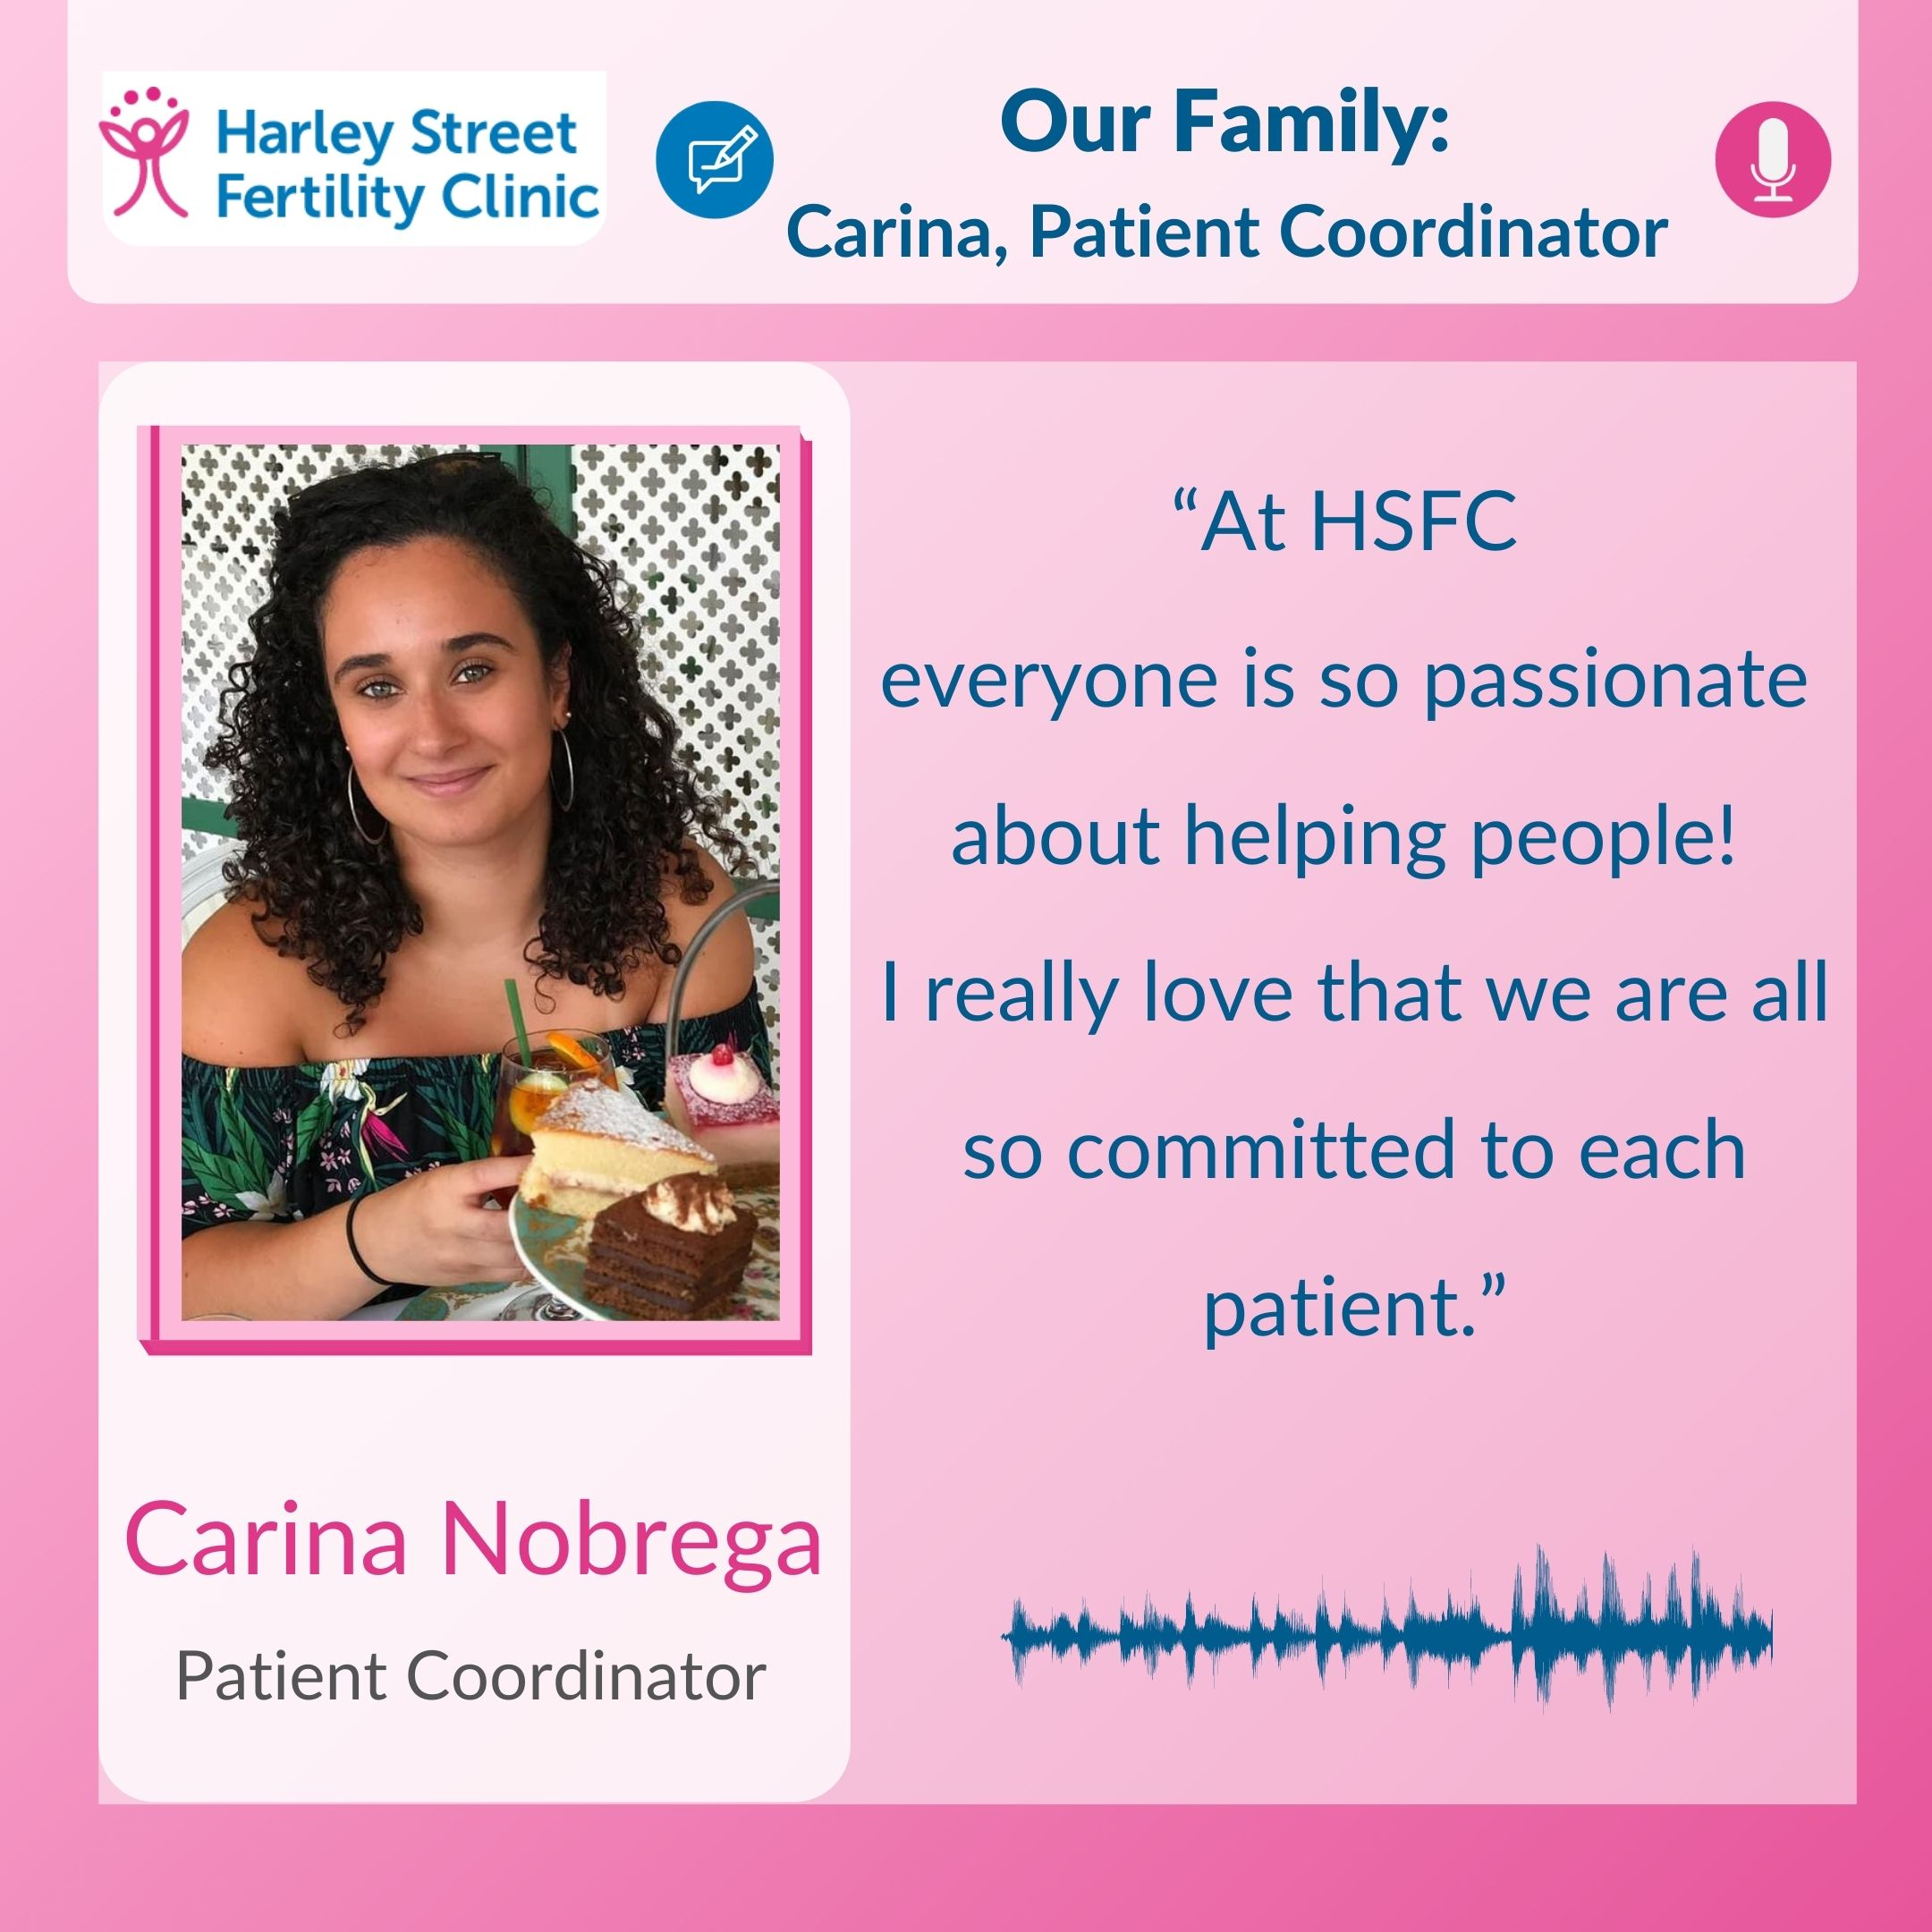 Our family: Carina, Patient Coordinator HSFC